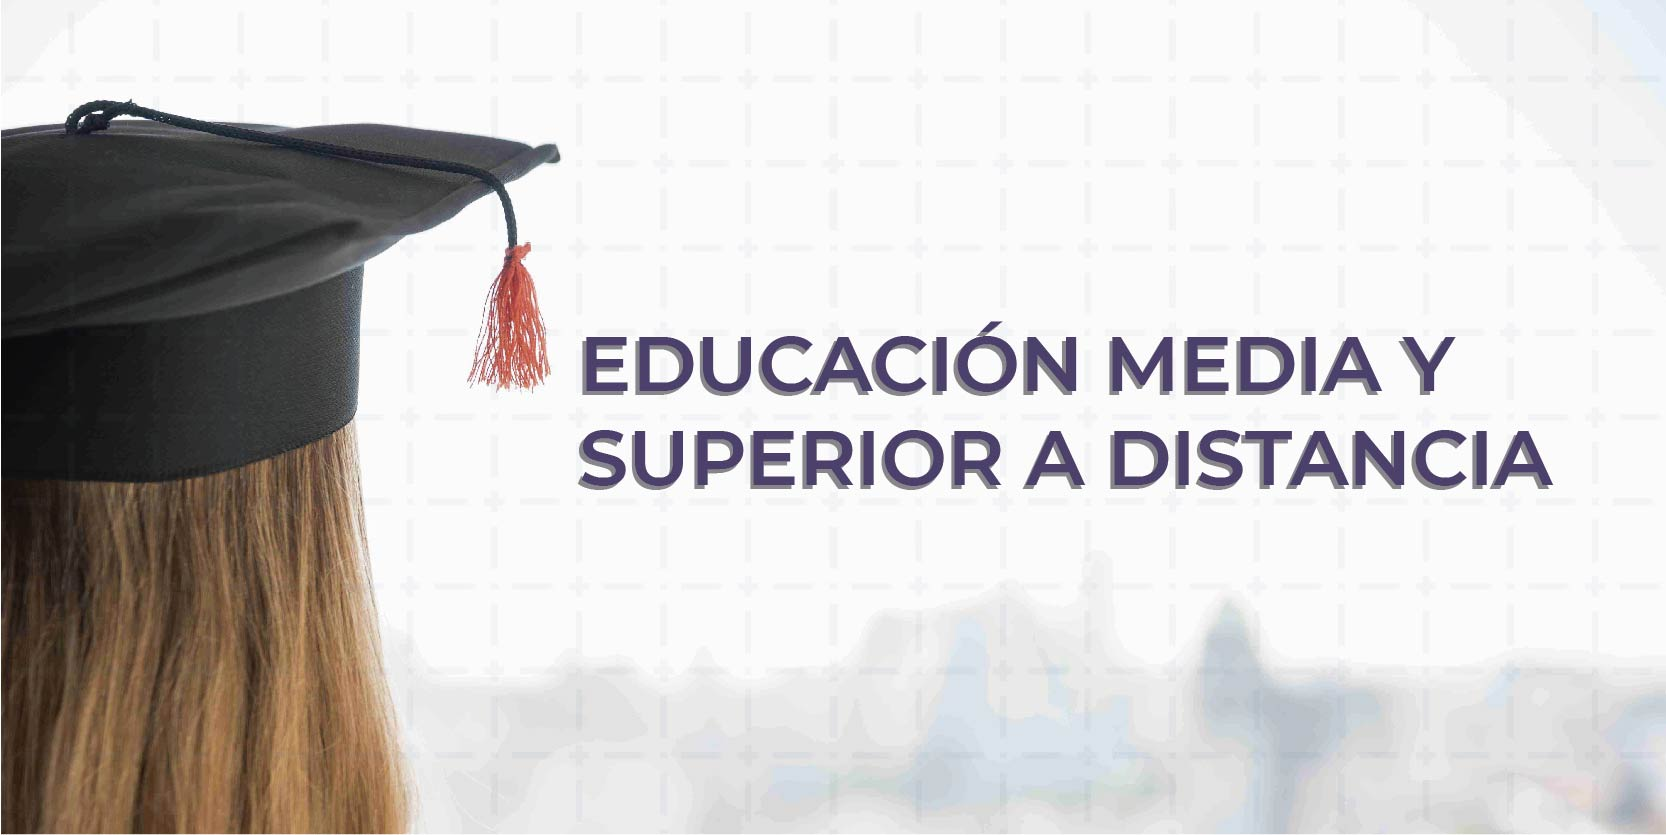 EDUCACIÓN MEDIA Y SUPERIOR A DISTANCIA